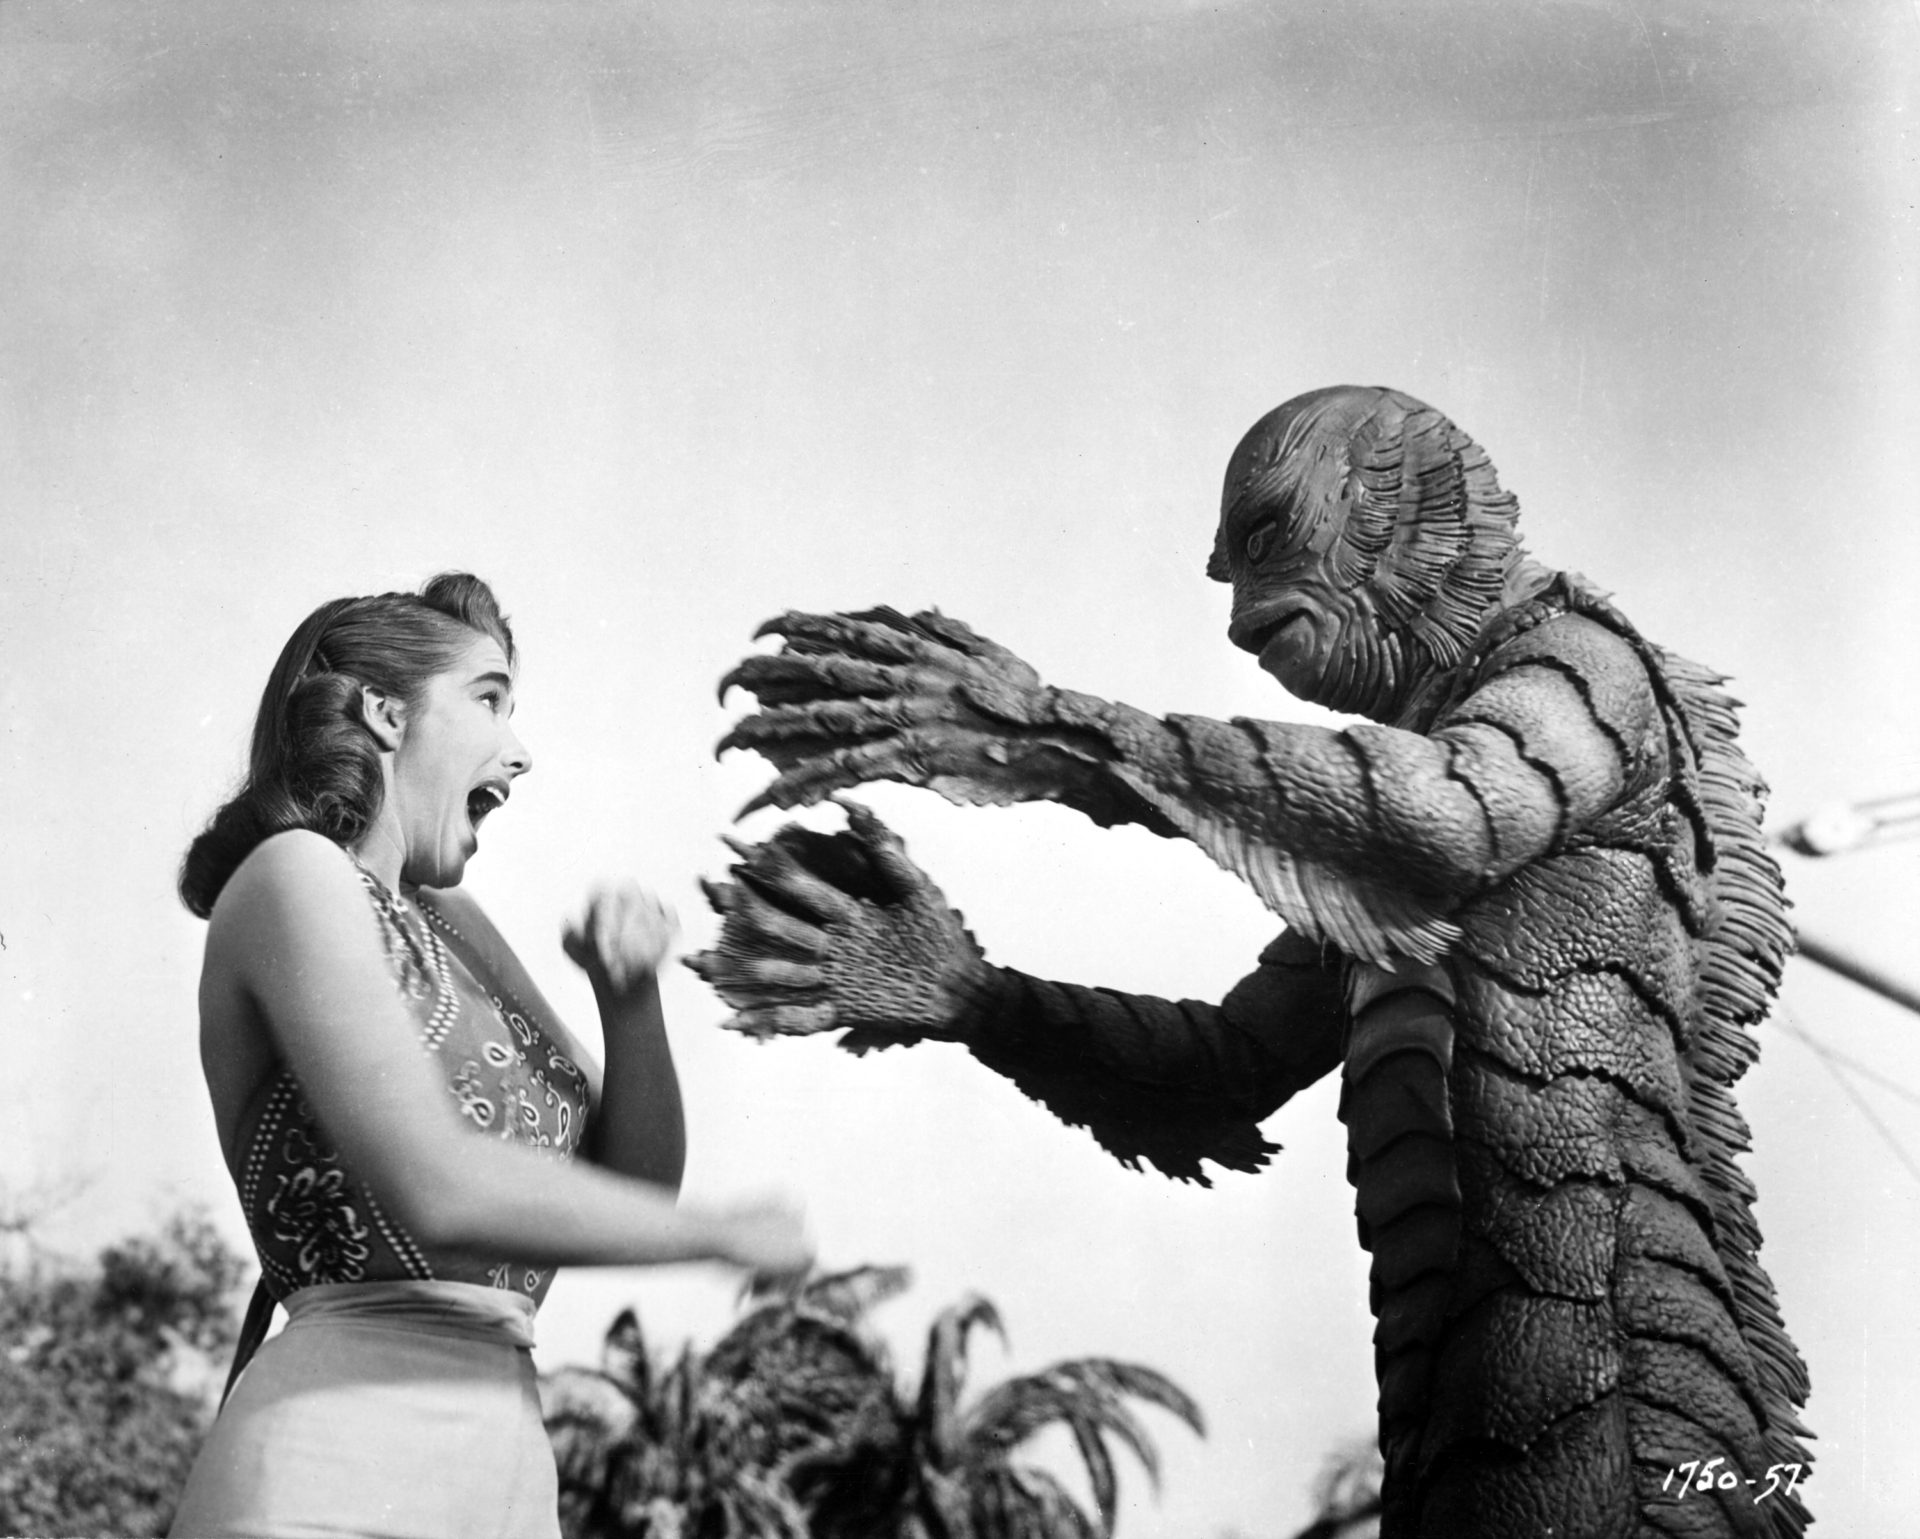 Gods & Monsters: The Creature from the Black Lagoon (1954)